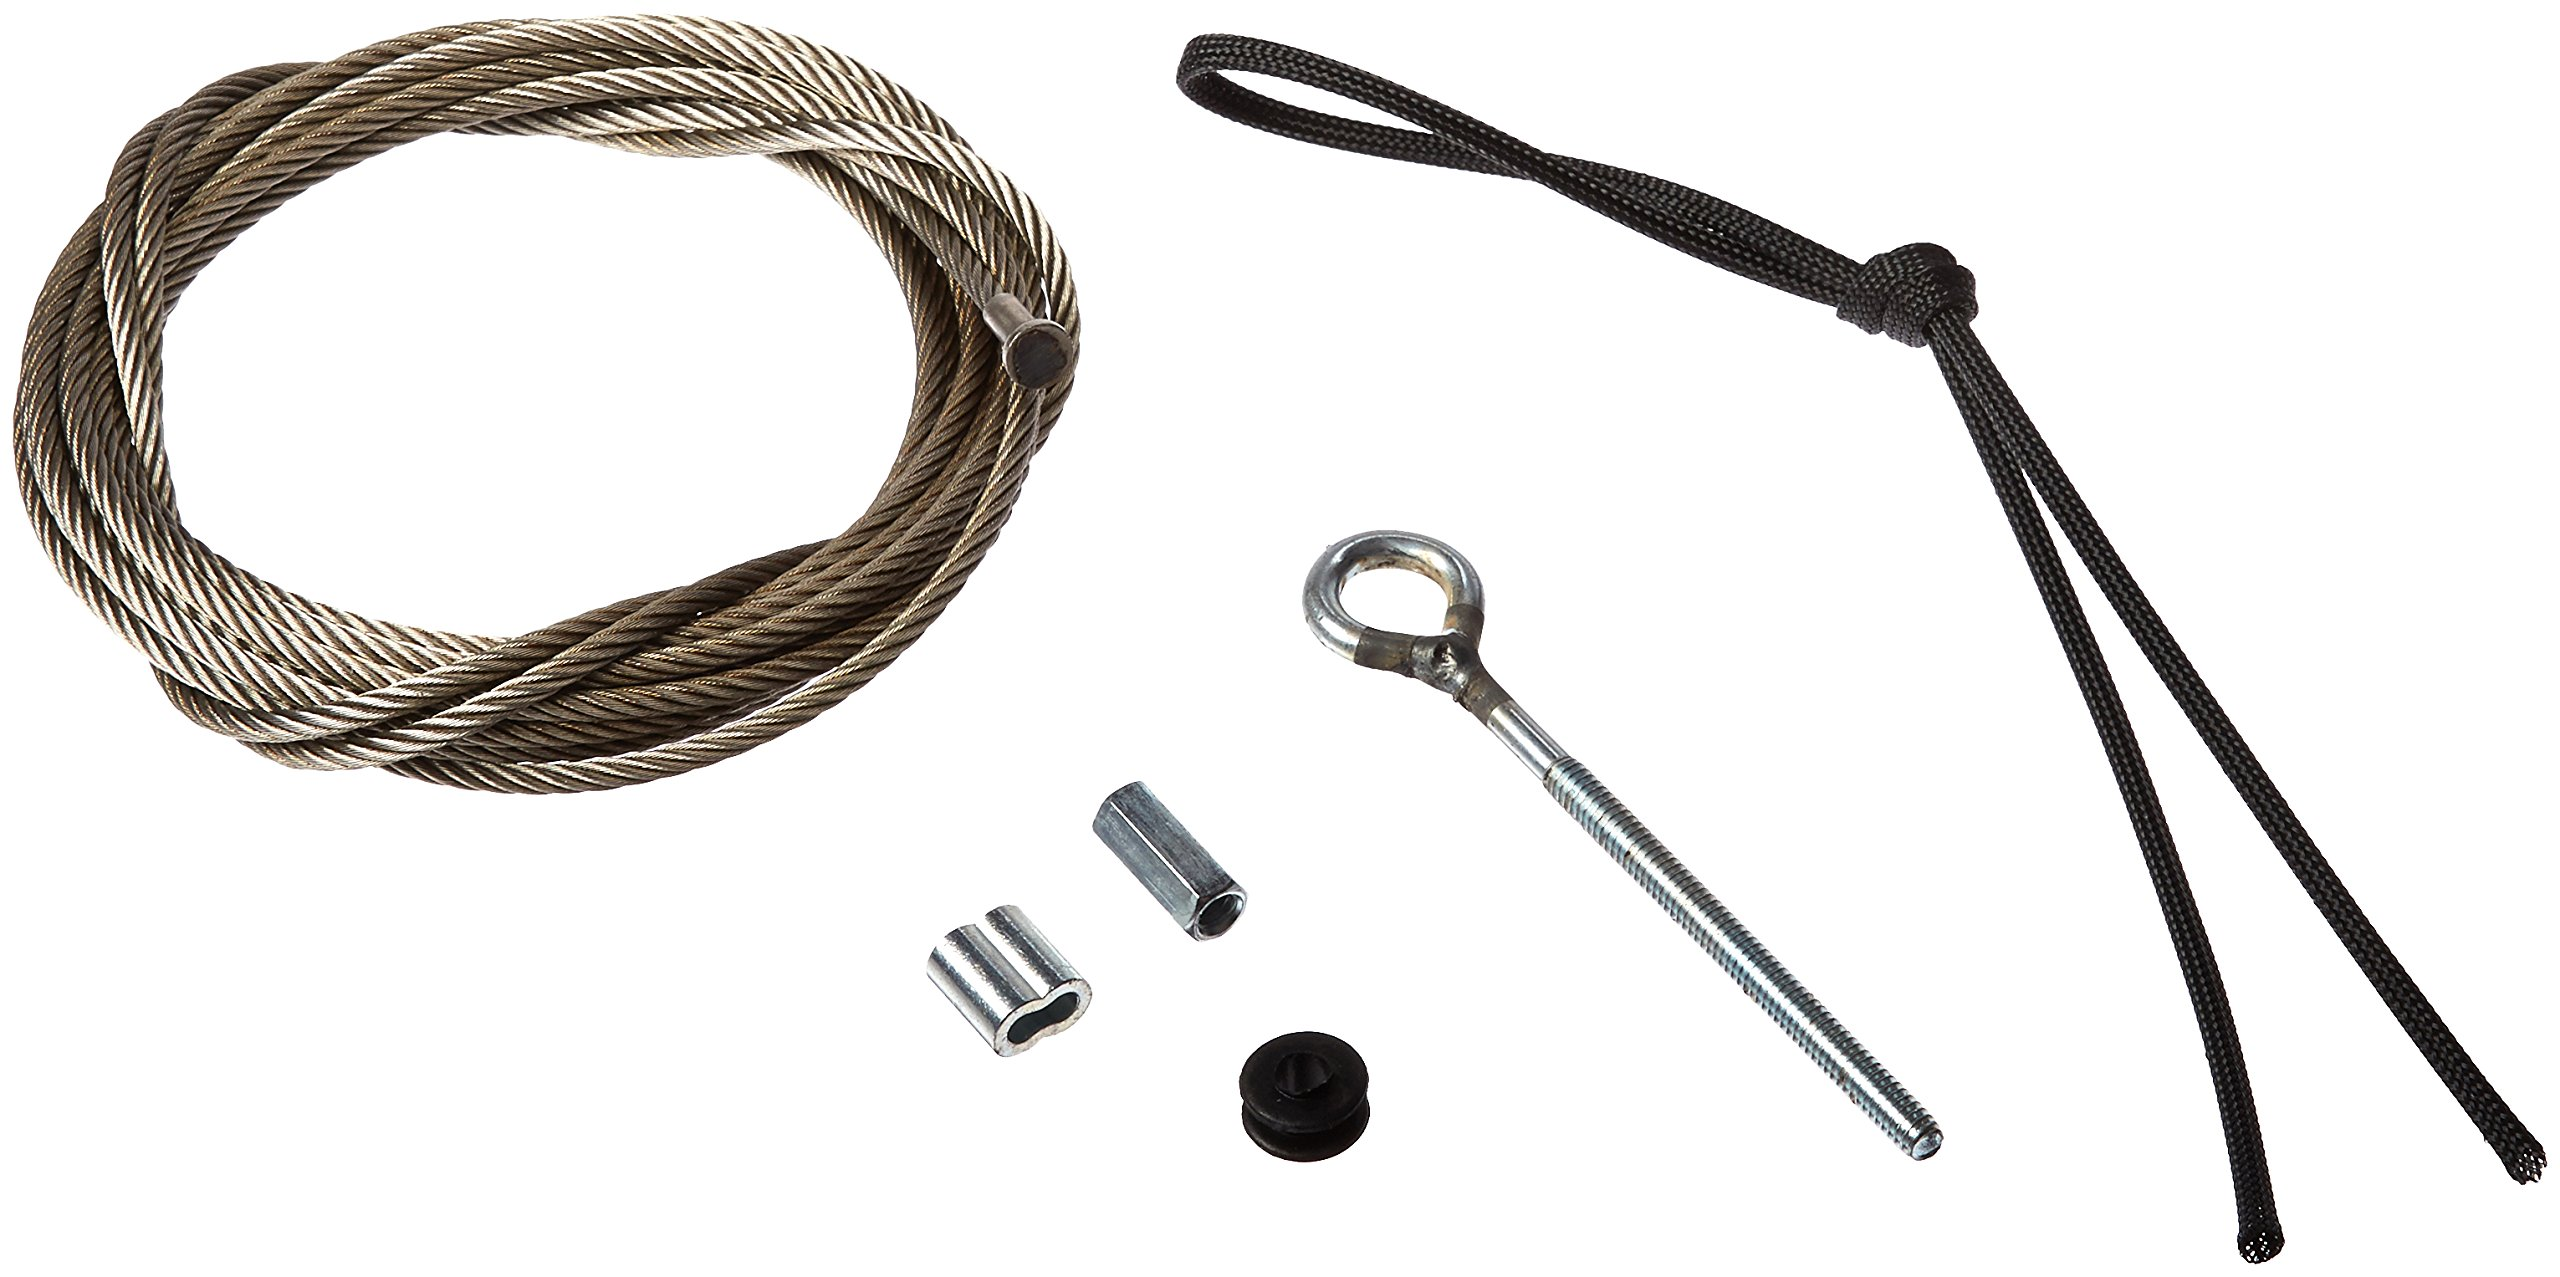 BAL BA22305 22305 Cable Repair Kit-Accu-Slide, Universal